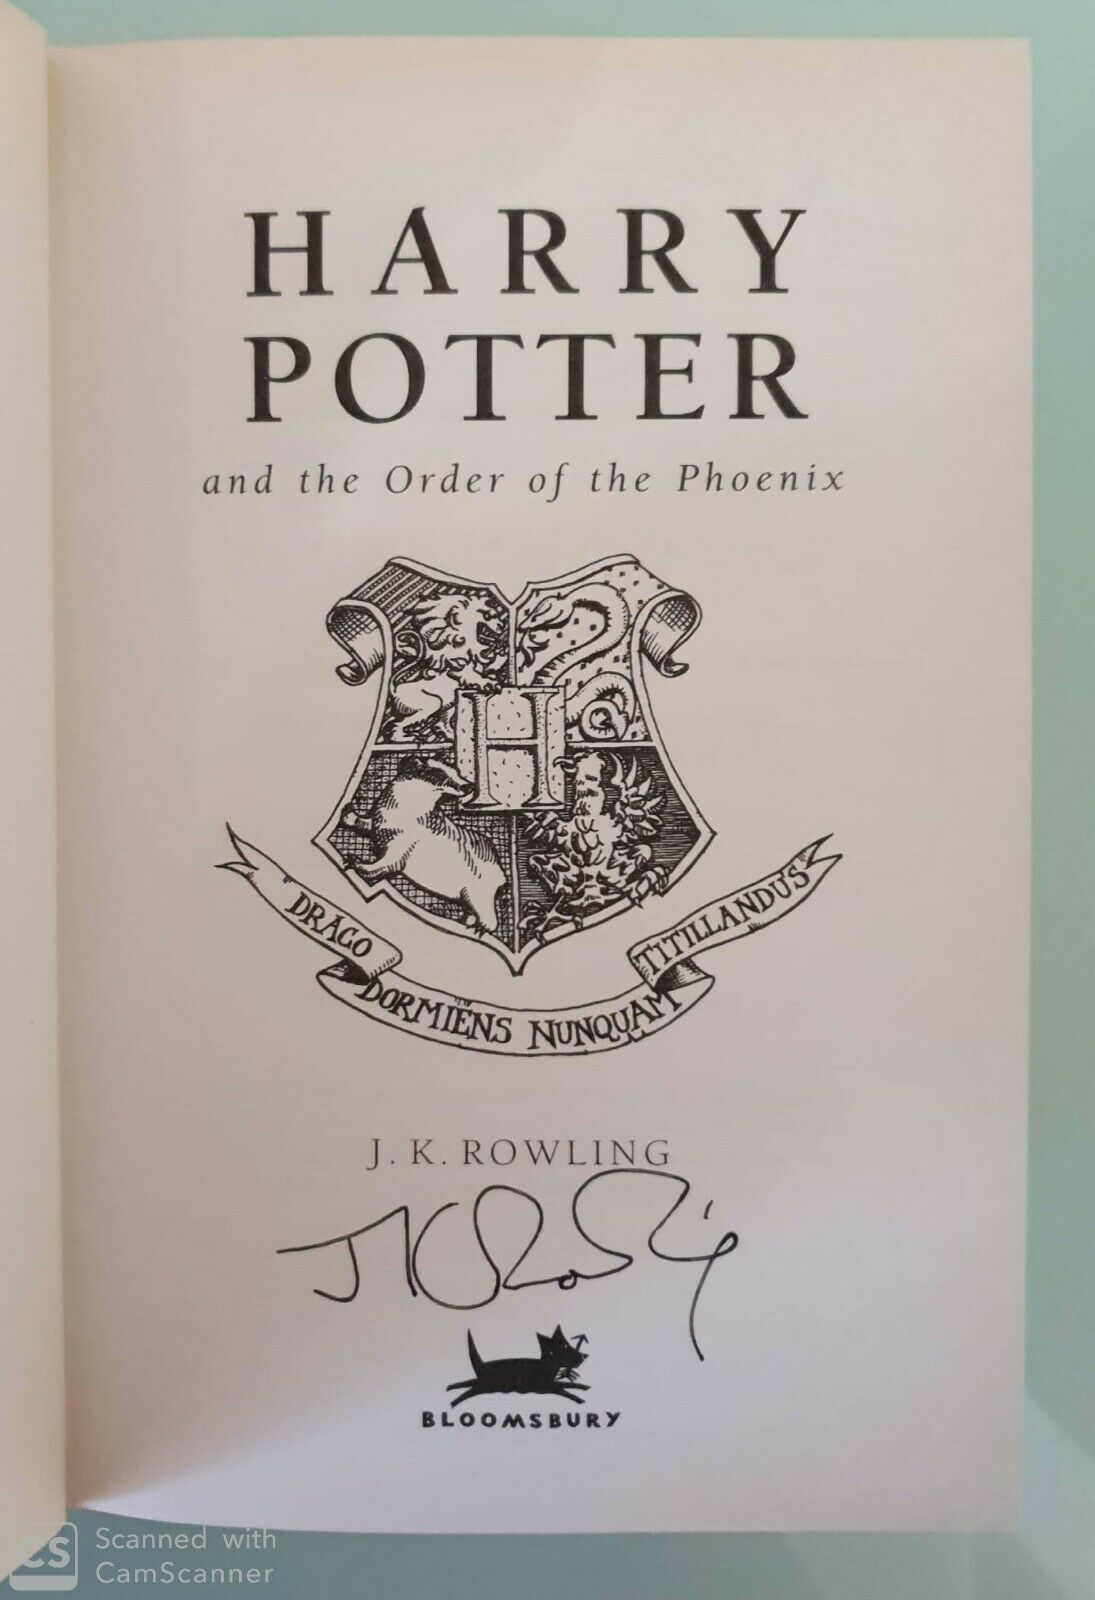 J.K. Rowling Forgery signature found inside of a UK Bloomsbury Harry Potter and the Order of the Phoenix on eBay.